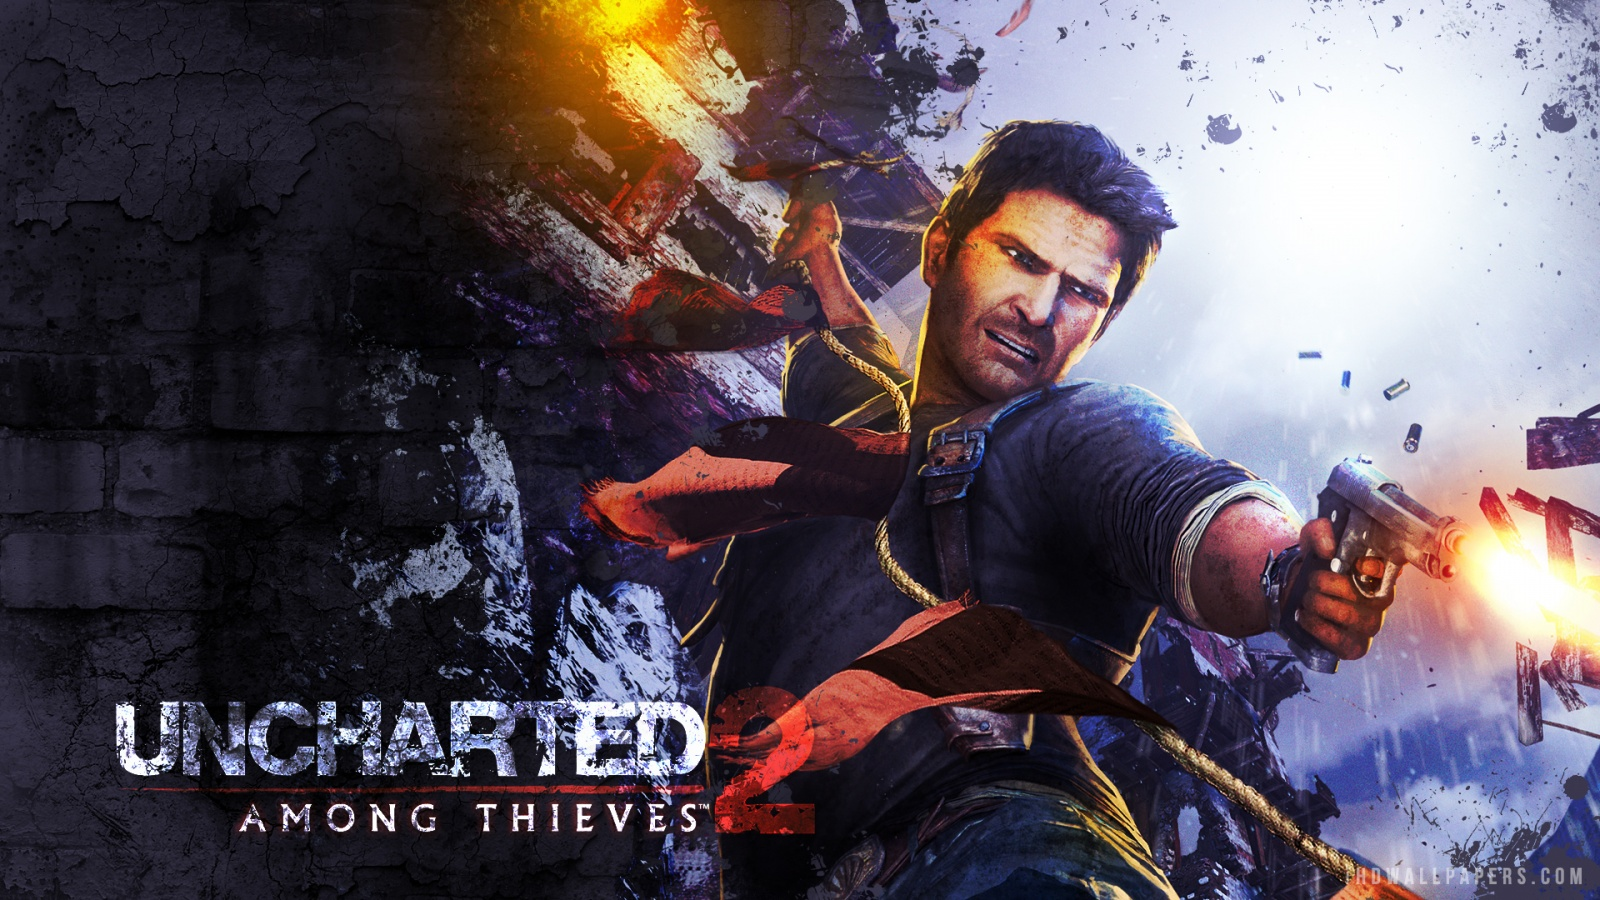 Uncharted 2 Among Thieves Wallpaper 1600x900